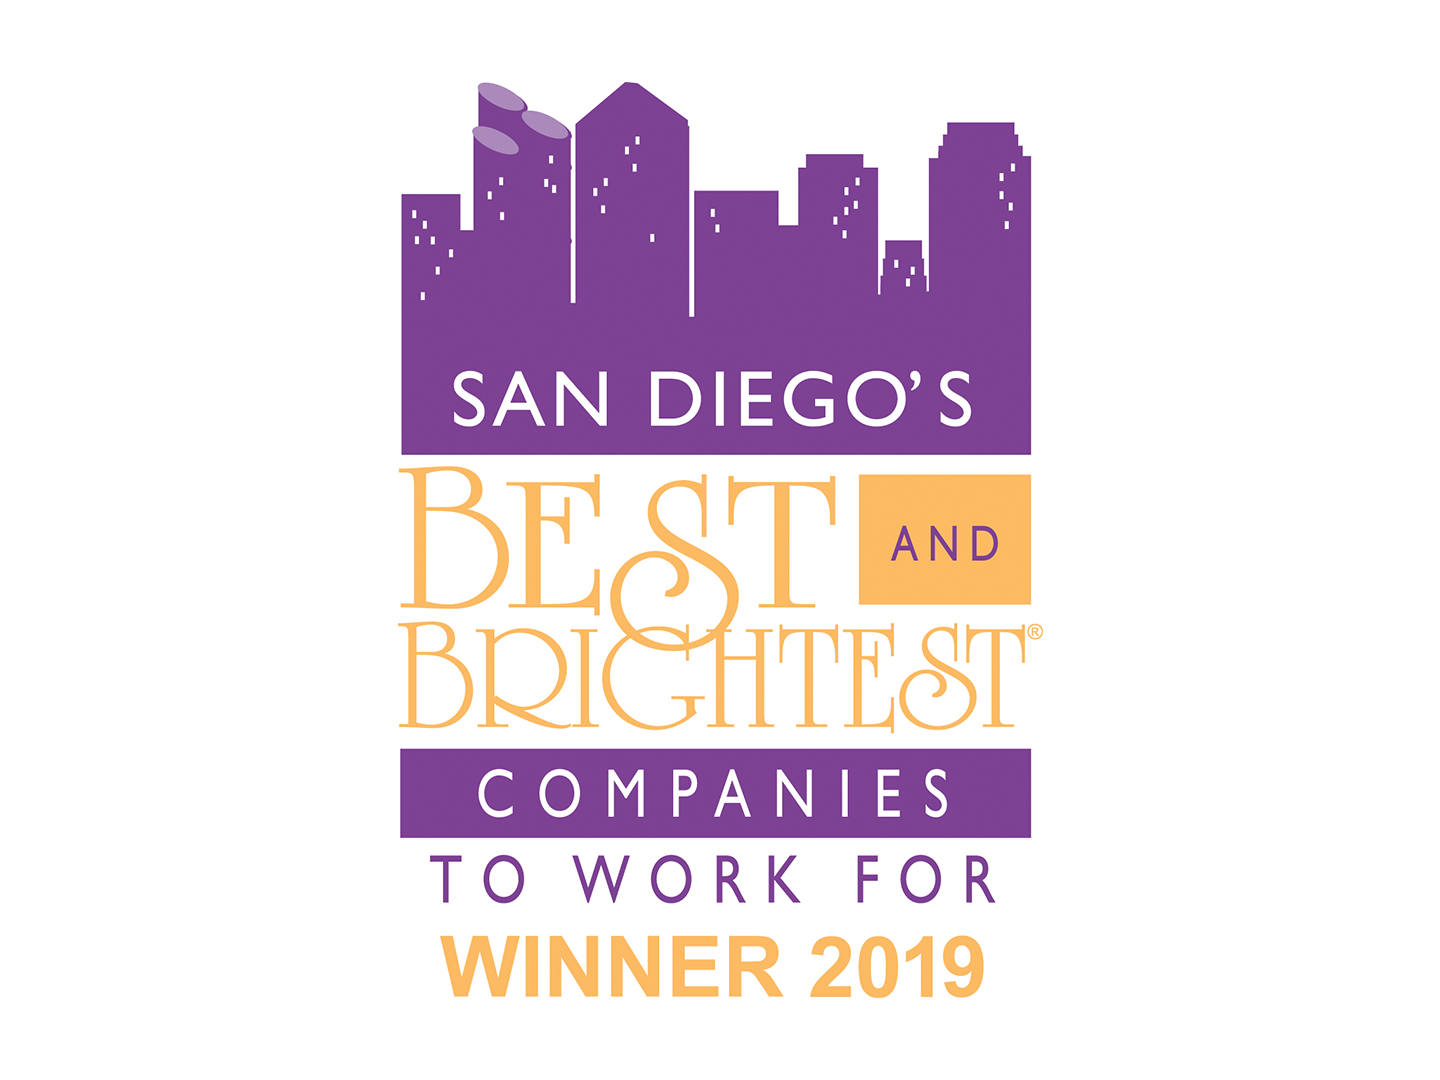 San Diego's Best & Brightest Companies to Work For 2019 Award